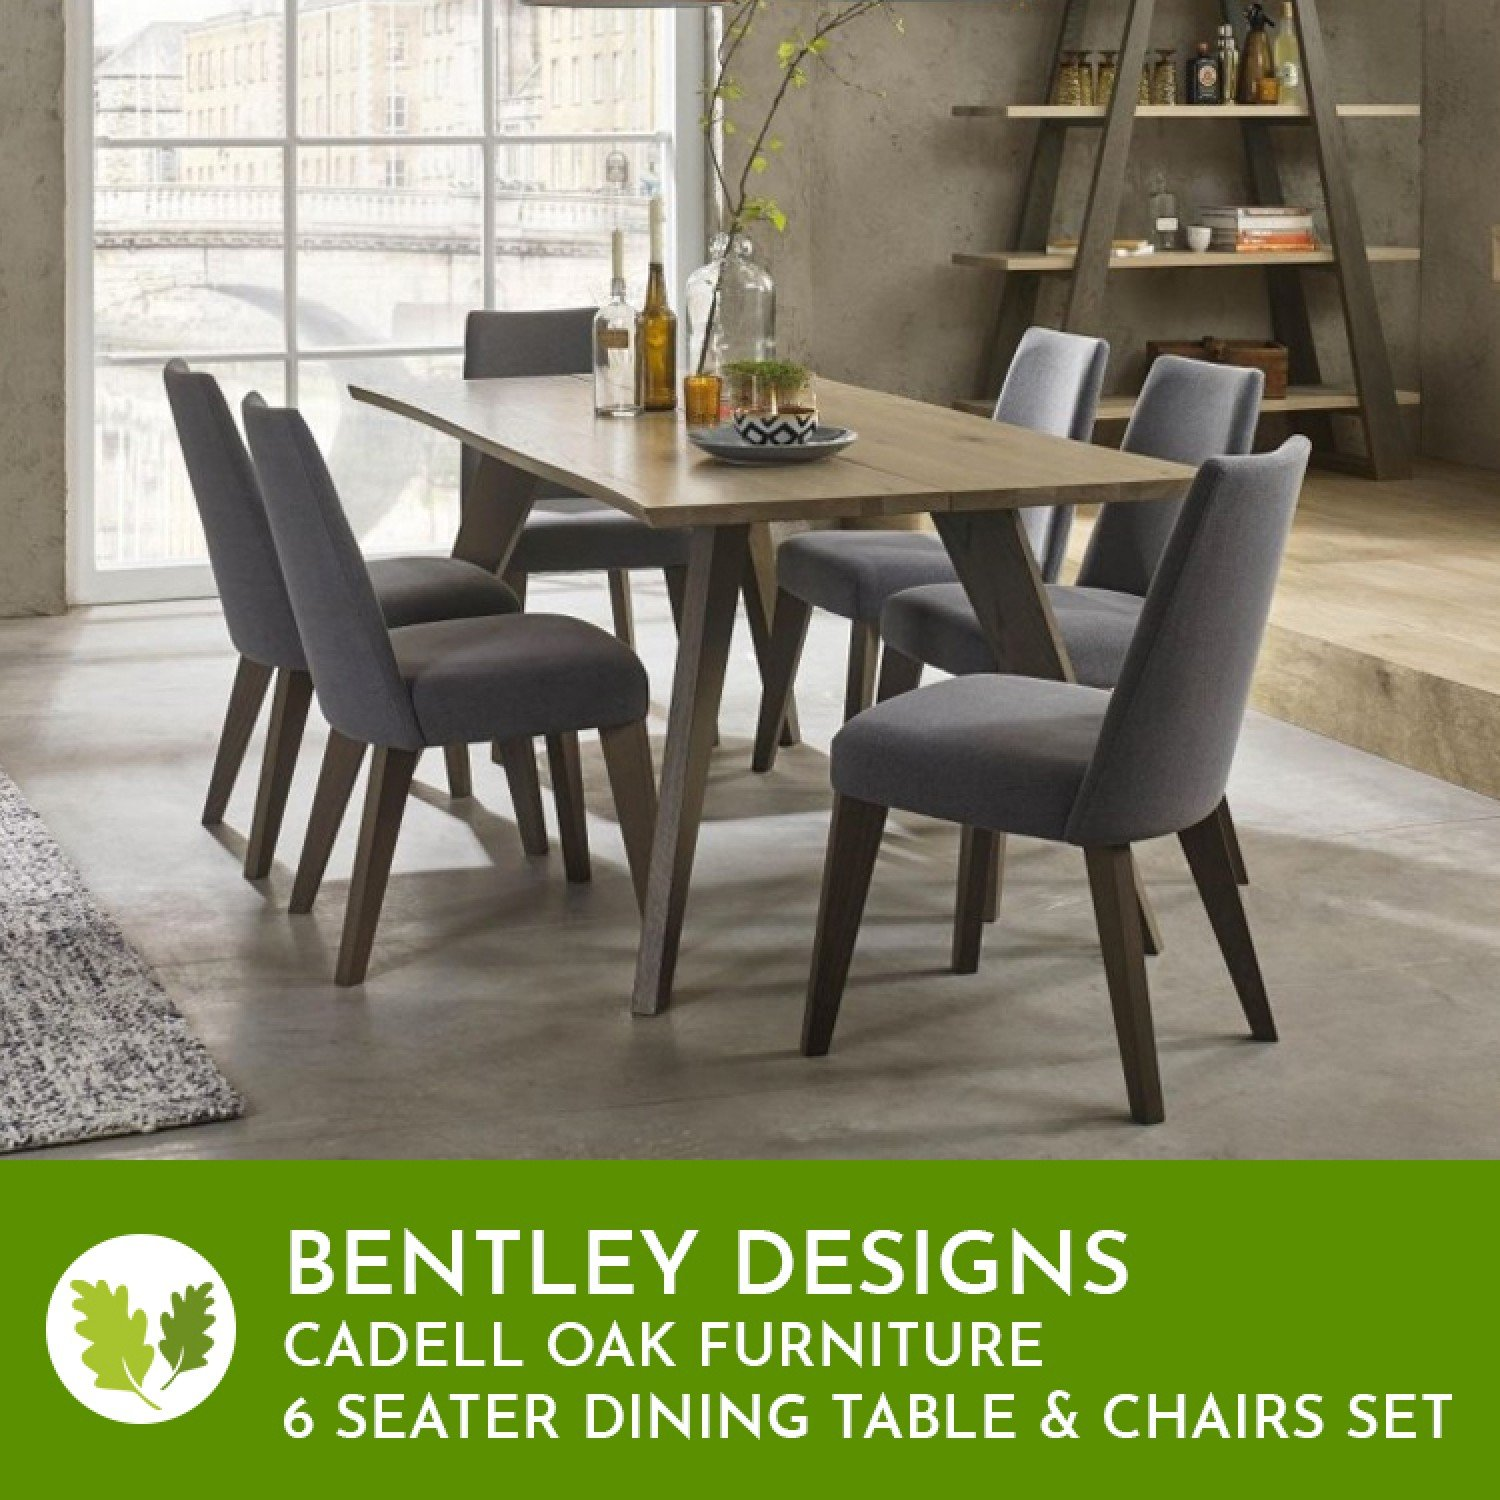 Bentley Designs Cadell Oak 6 Seater Dining Table Chair Set Oak Furniture House